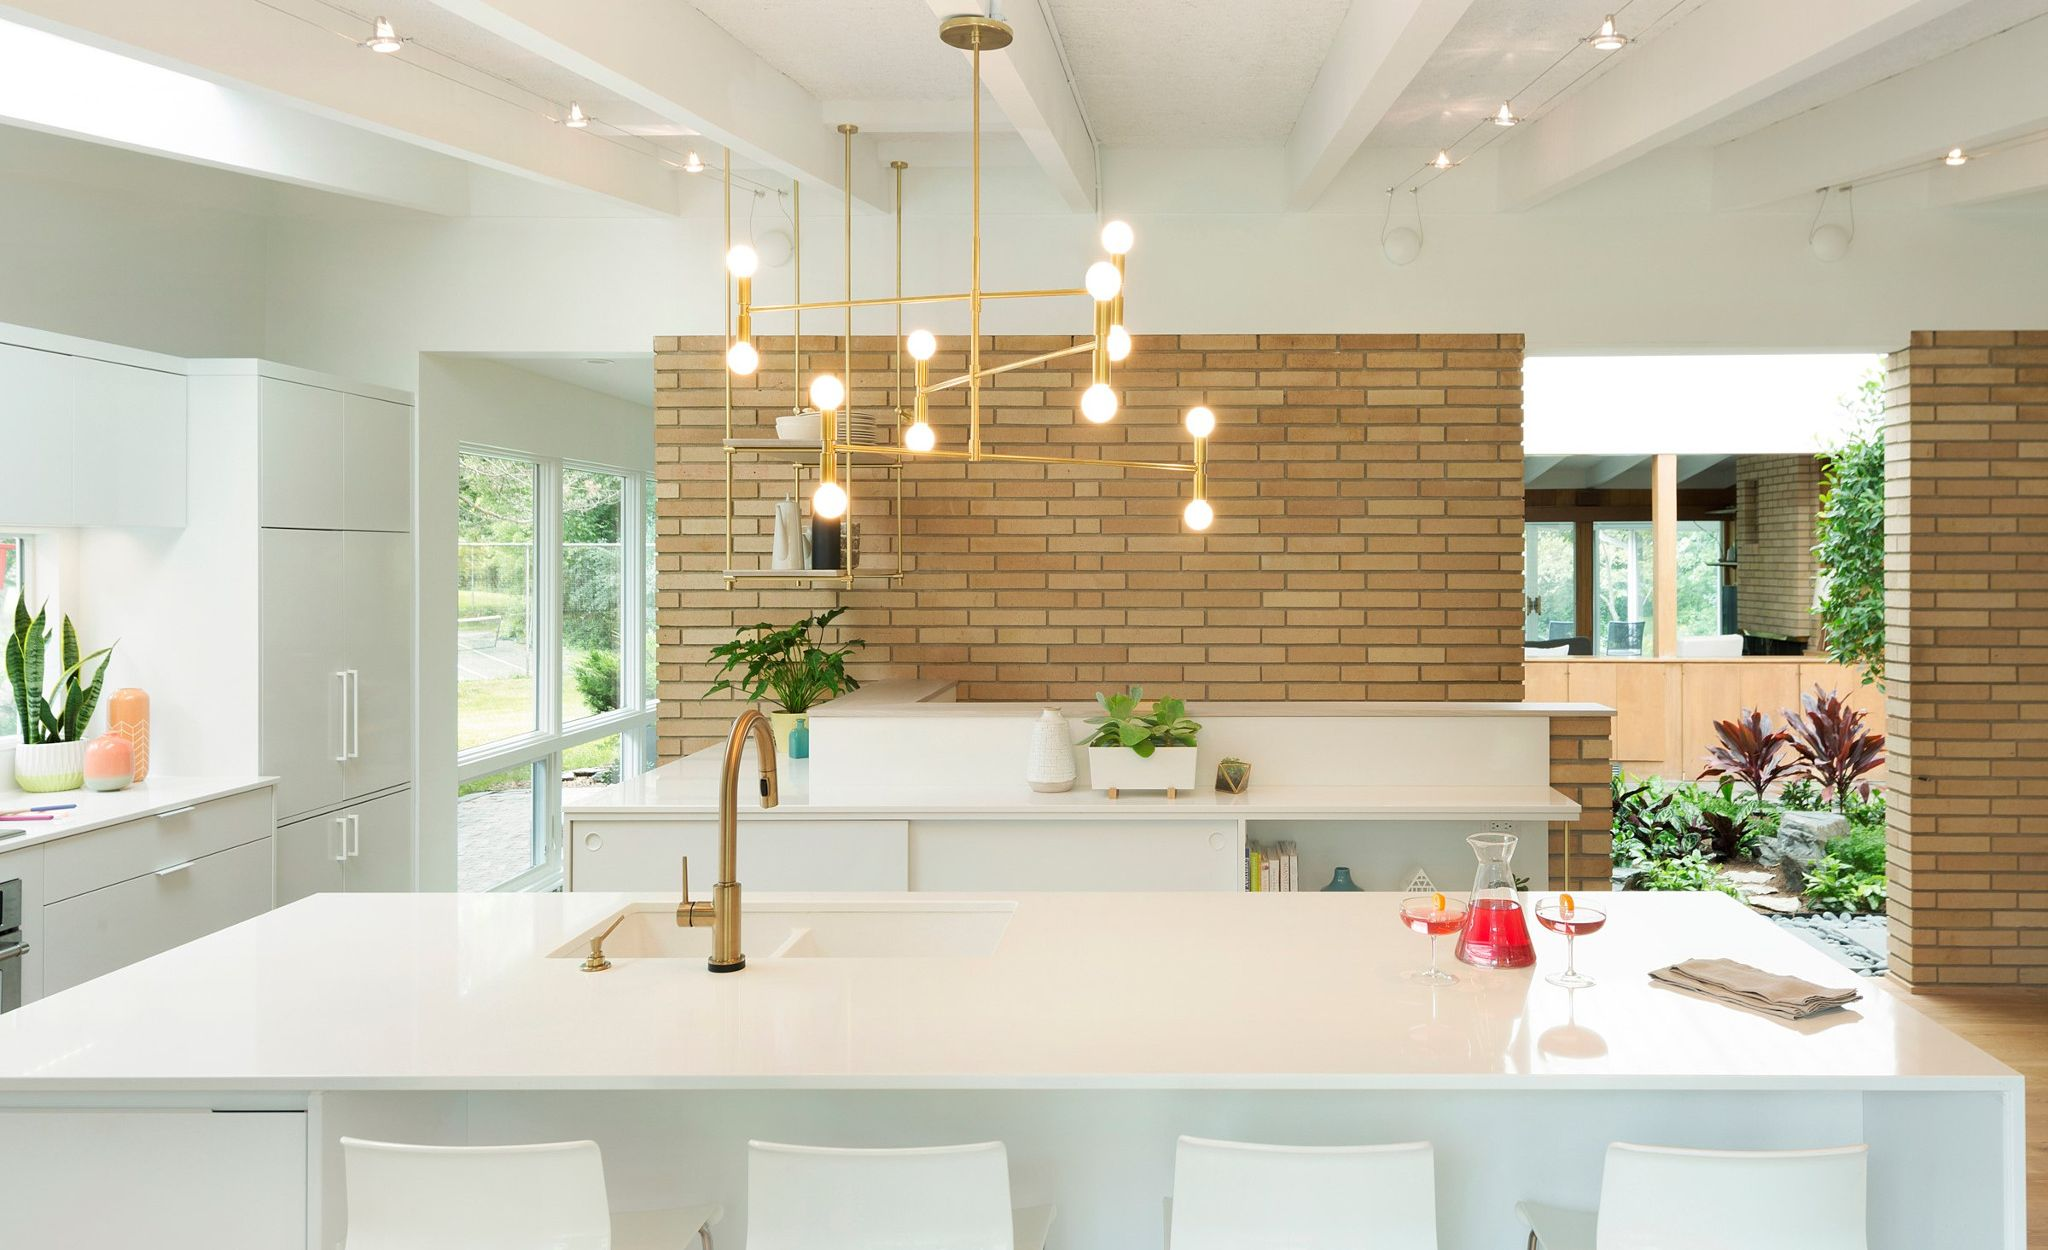 Pristine Cambria White Cliff in a chic Scandanavian meets midcentury modern space.